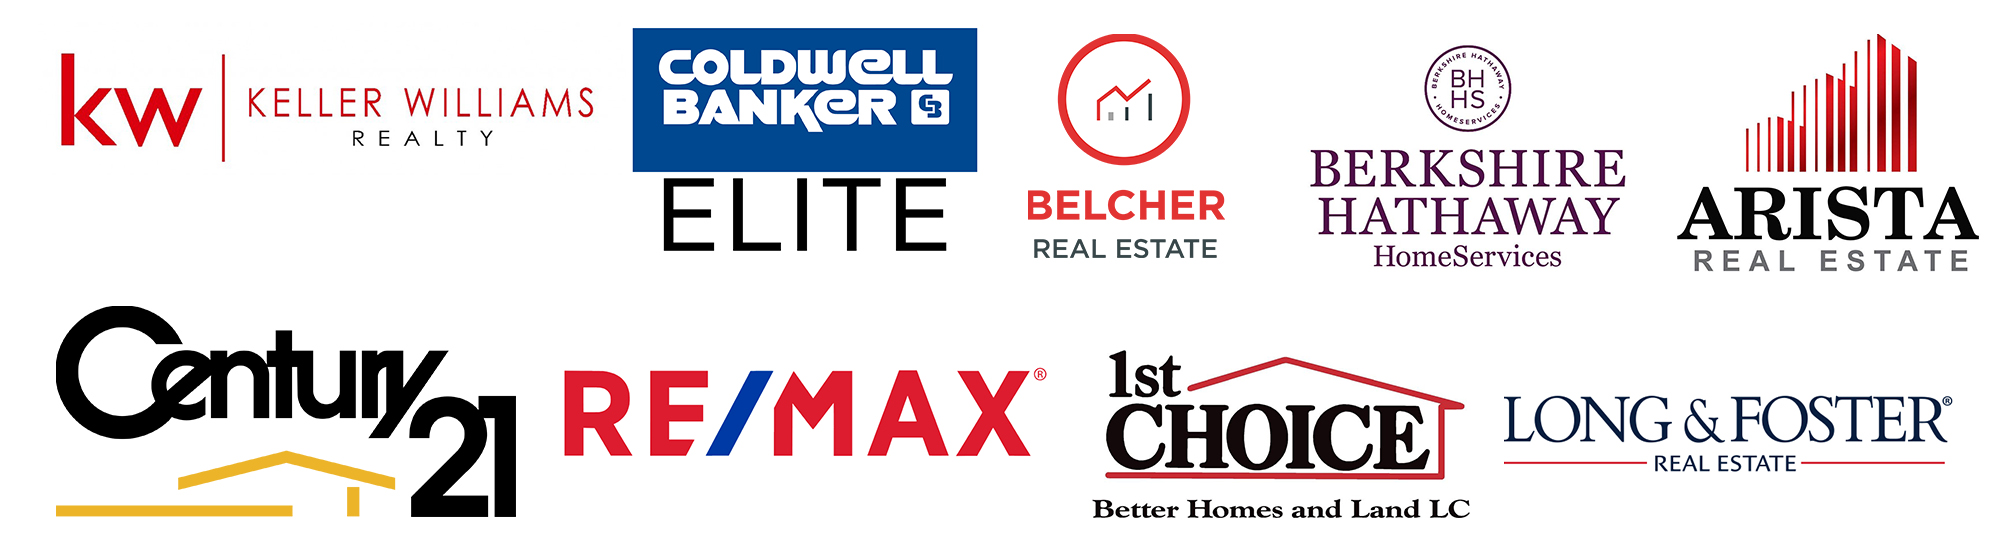 Real Estate Company Logos.jpg